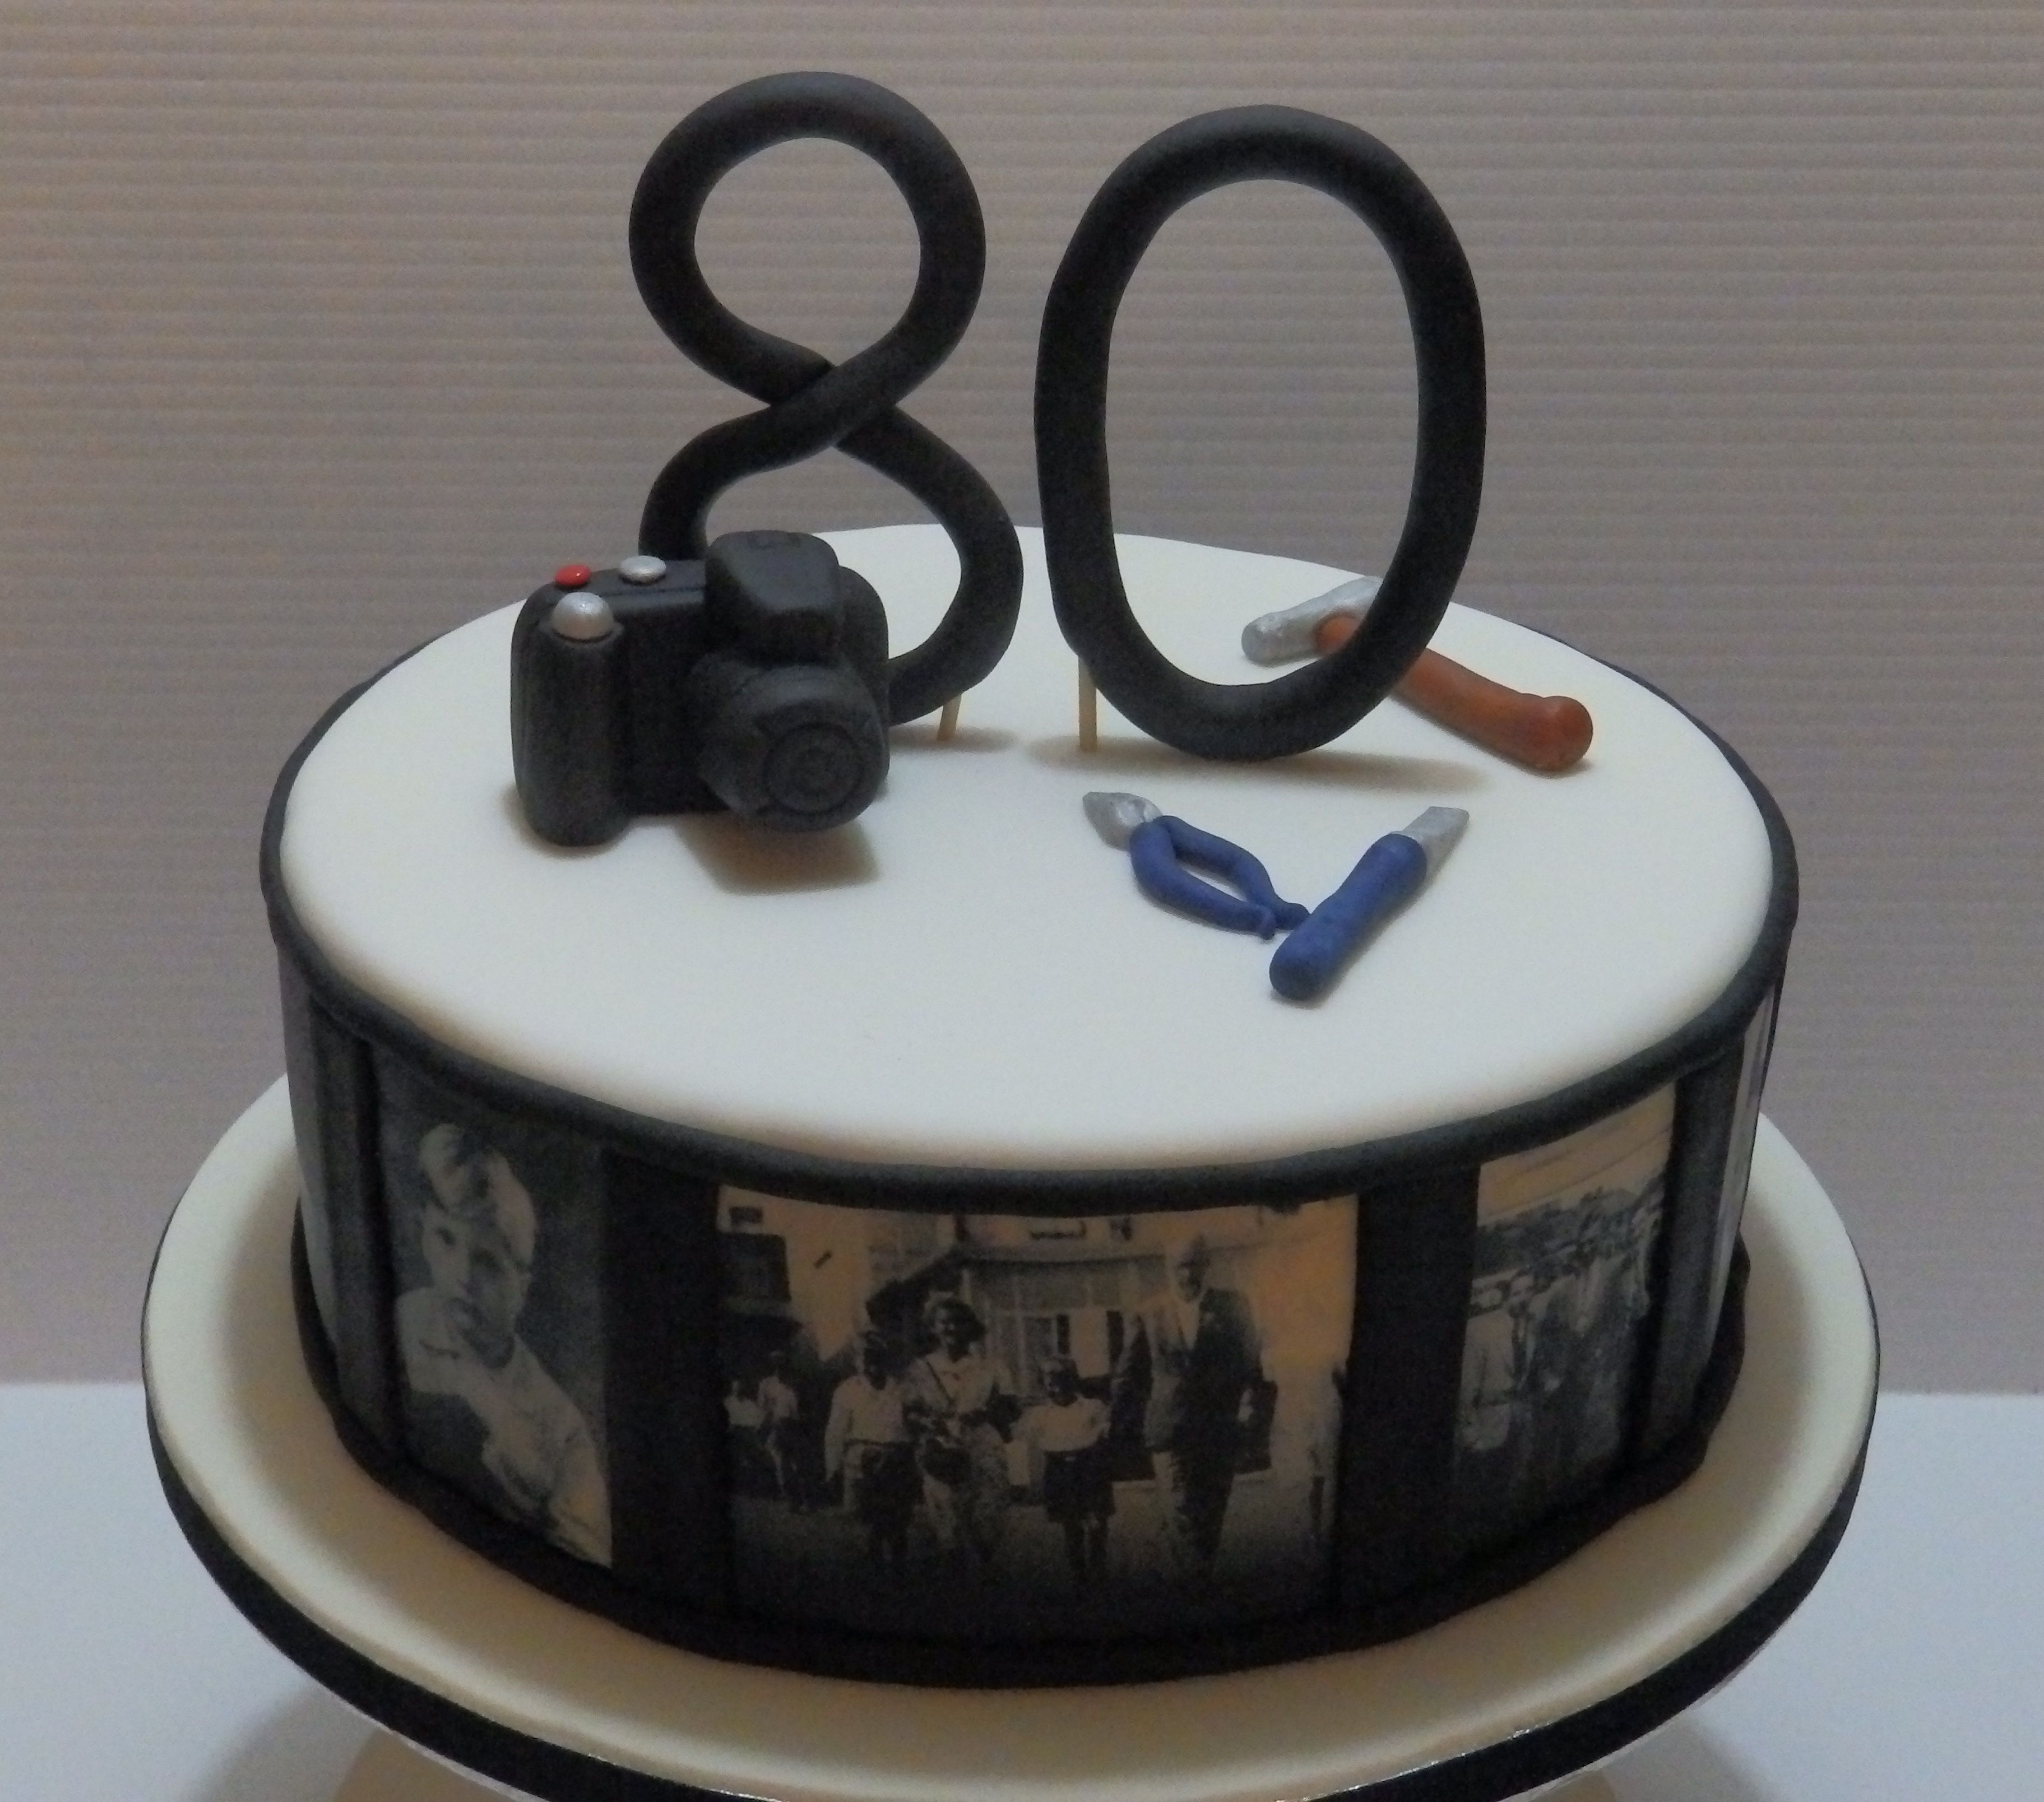 80th Birthday Cake With Edible Photo Images Of The Birthday Boy